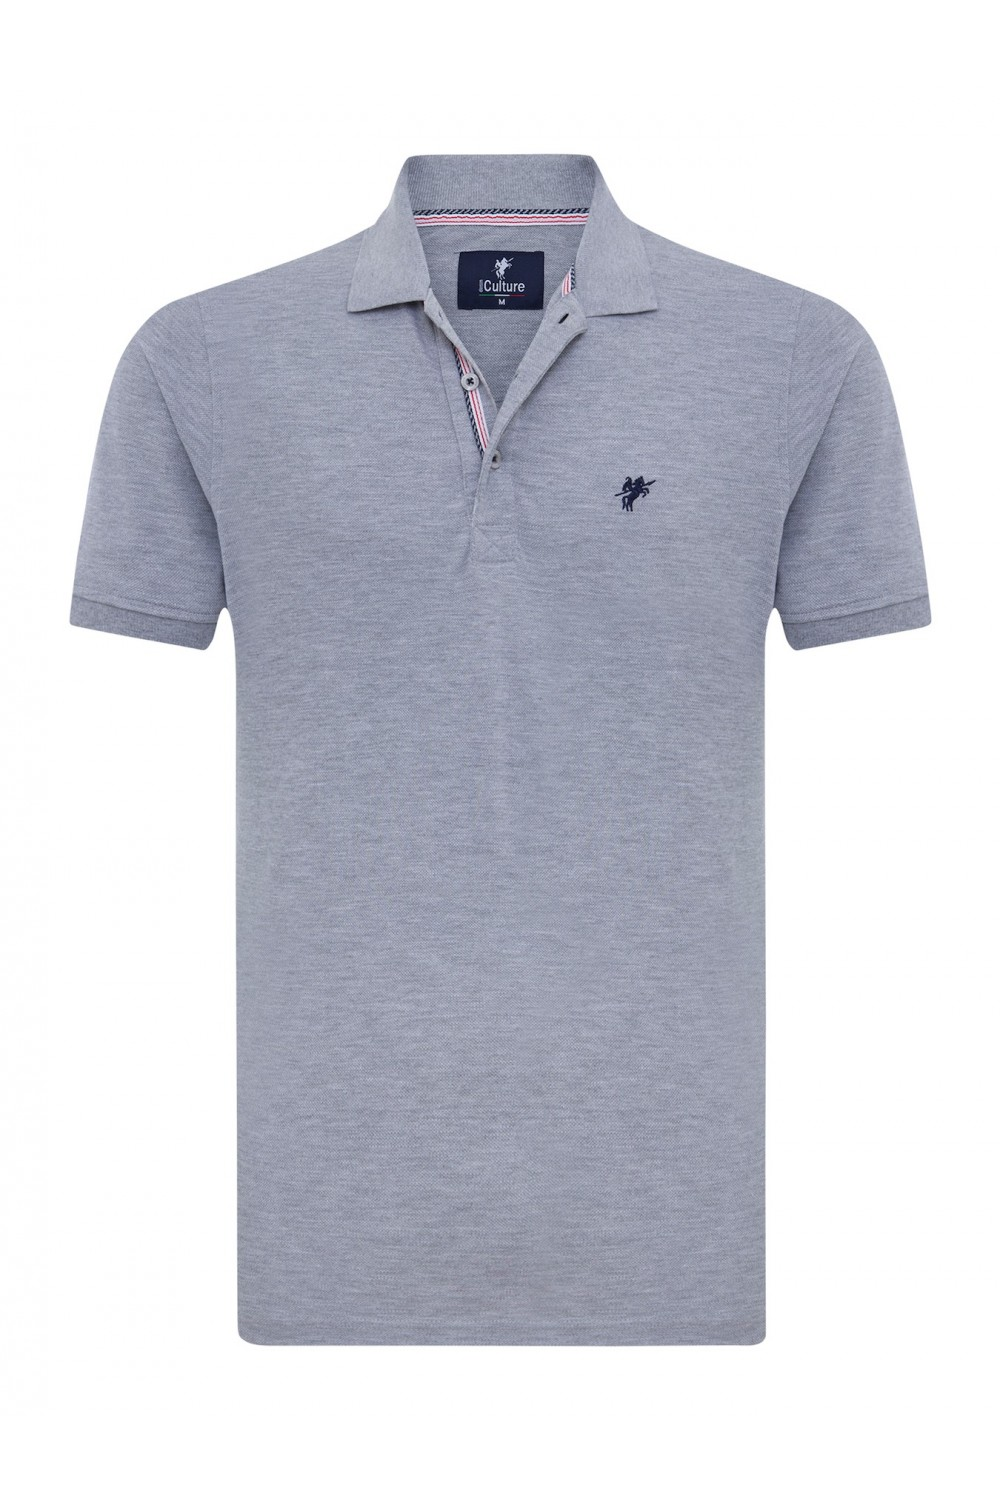 Men's Poloshirt Knitted Heather Gray Cotton